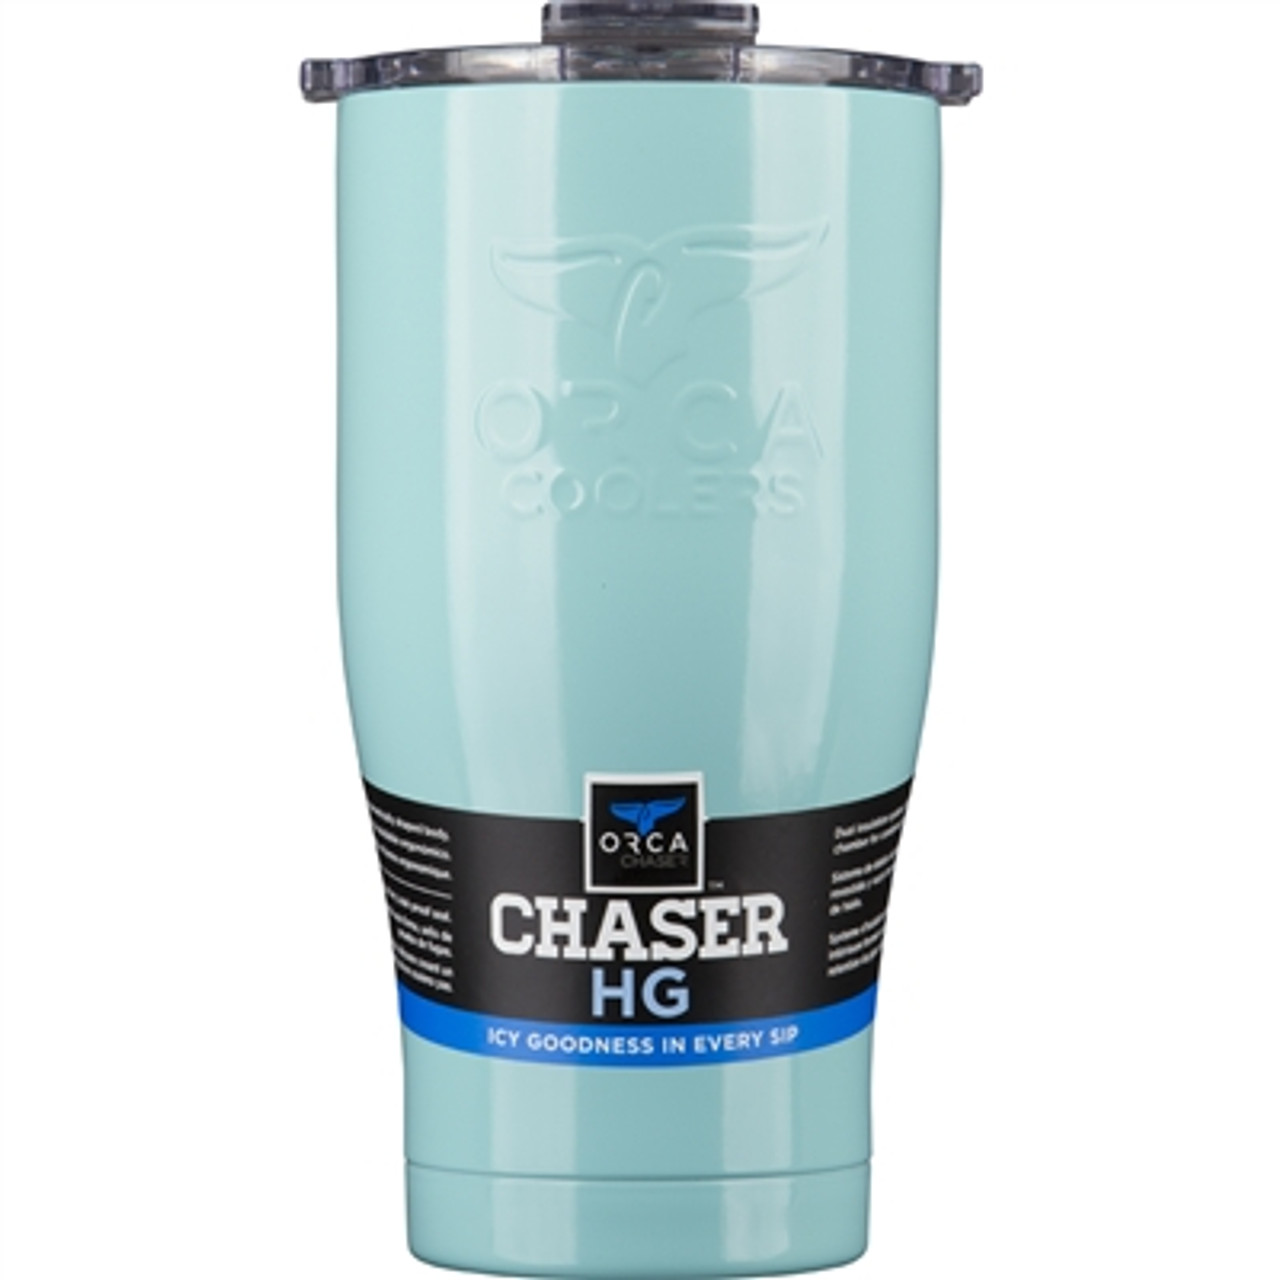 Orca Chaser 27oz, Seafoam Green High Gloss